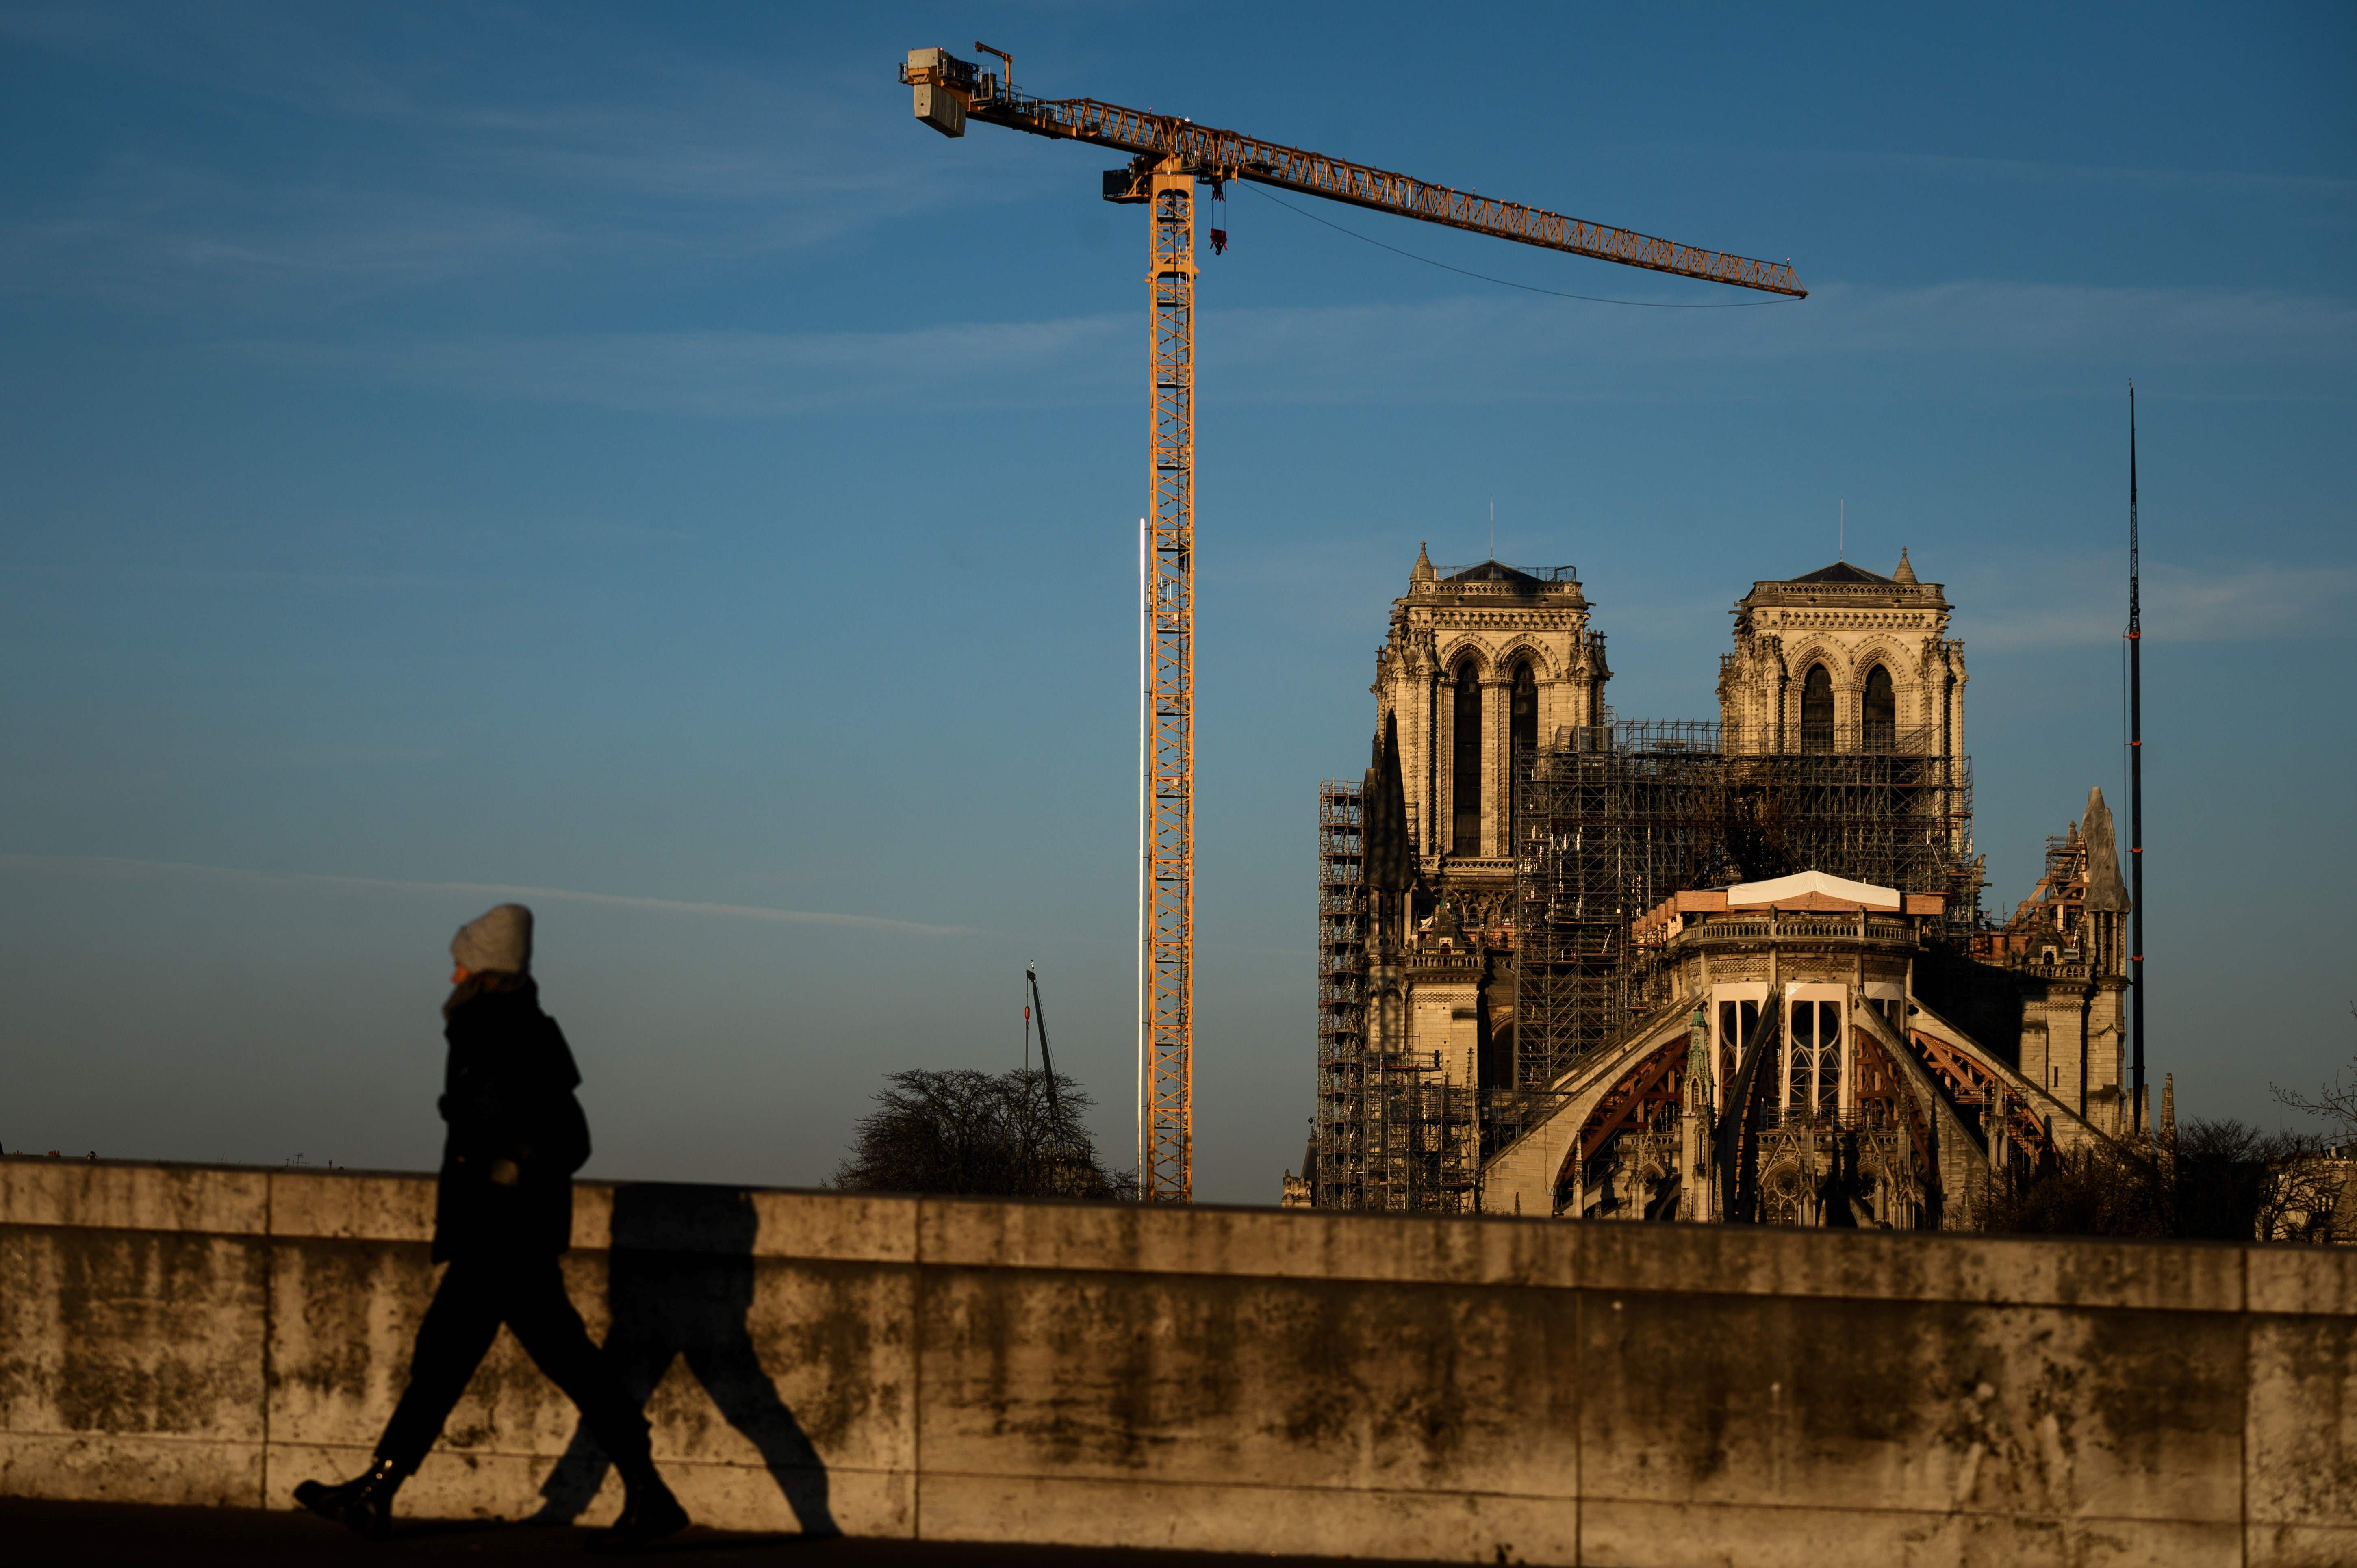 Notre Dame isn't France's only must-see Gothic cathedral. Here are four more to check out